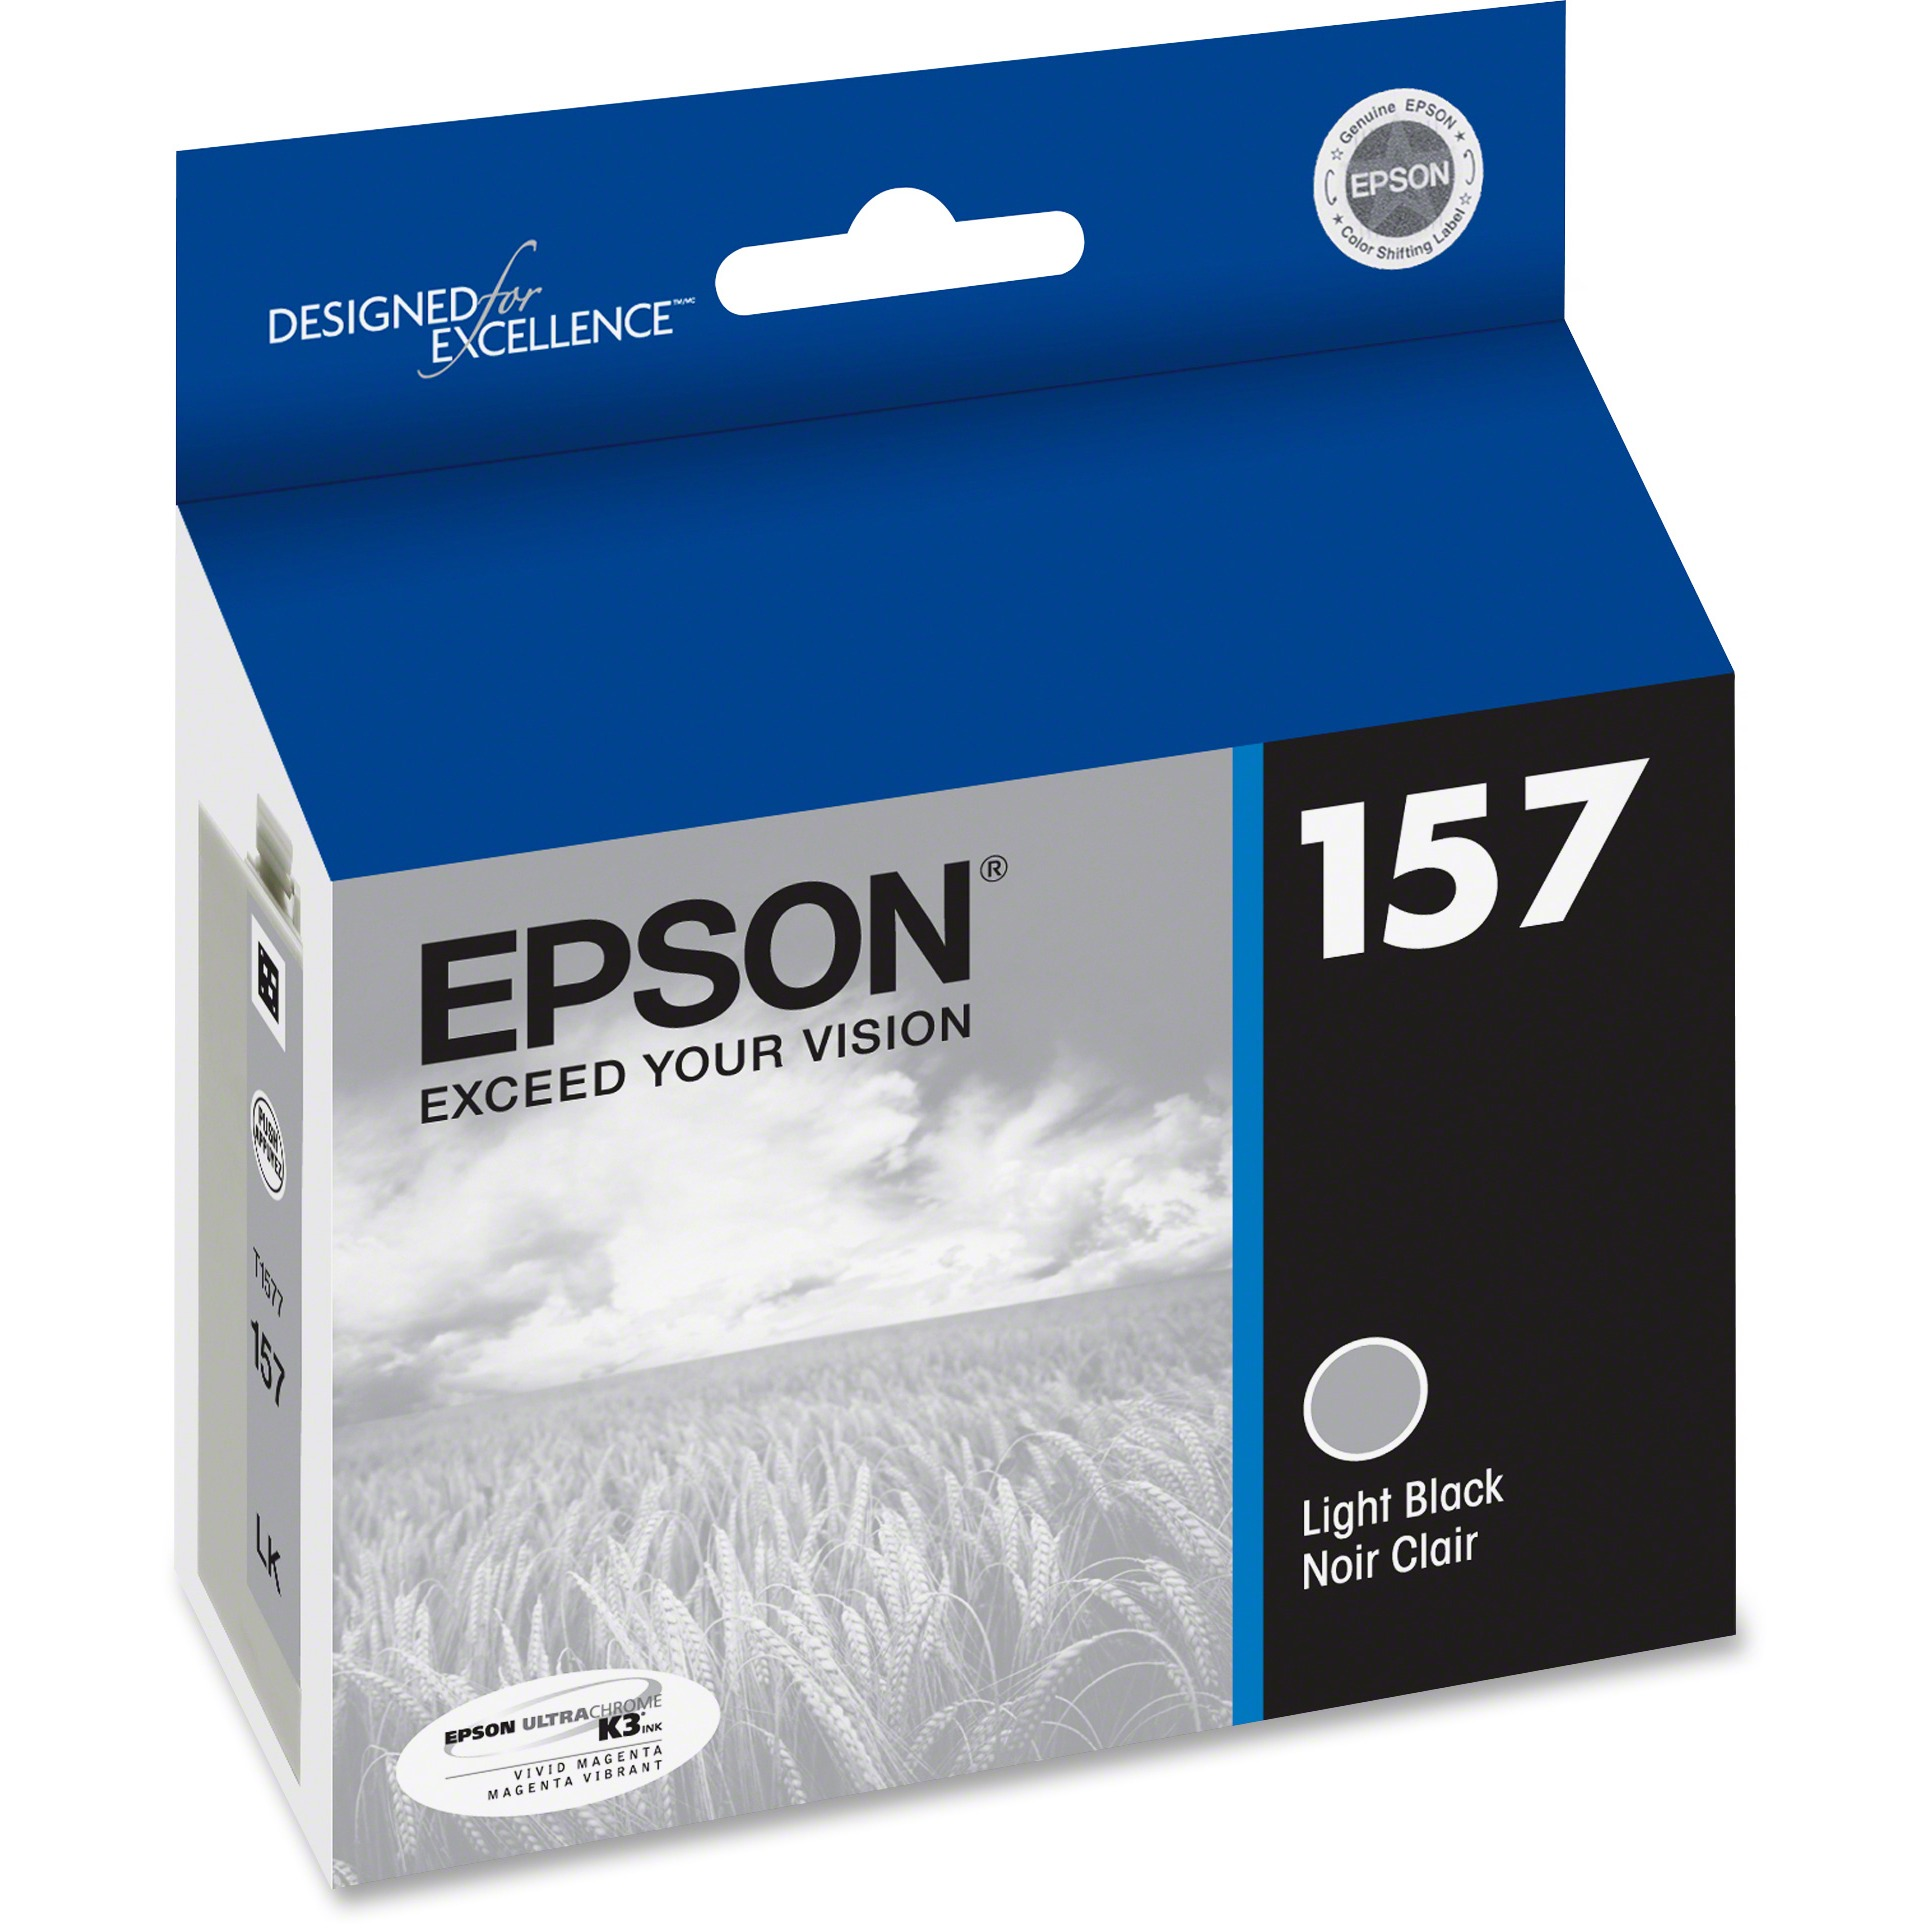 Epson, EPST157720, 157 UltraChrome K3 Ink Cartridge, 1 Each by Epson